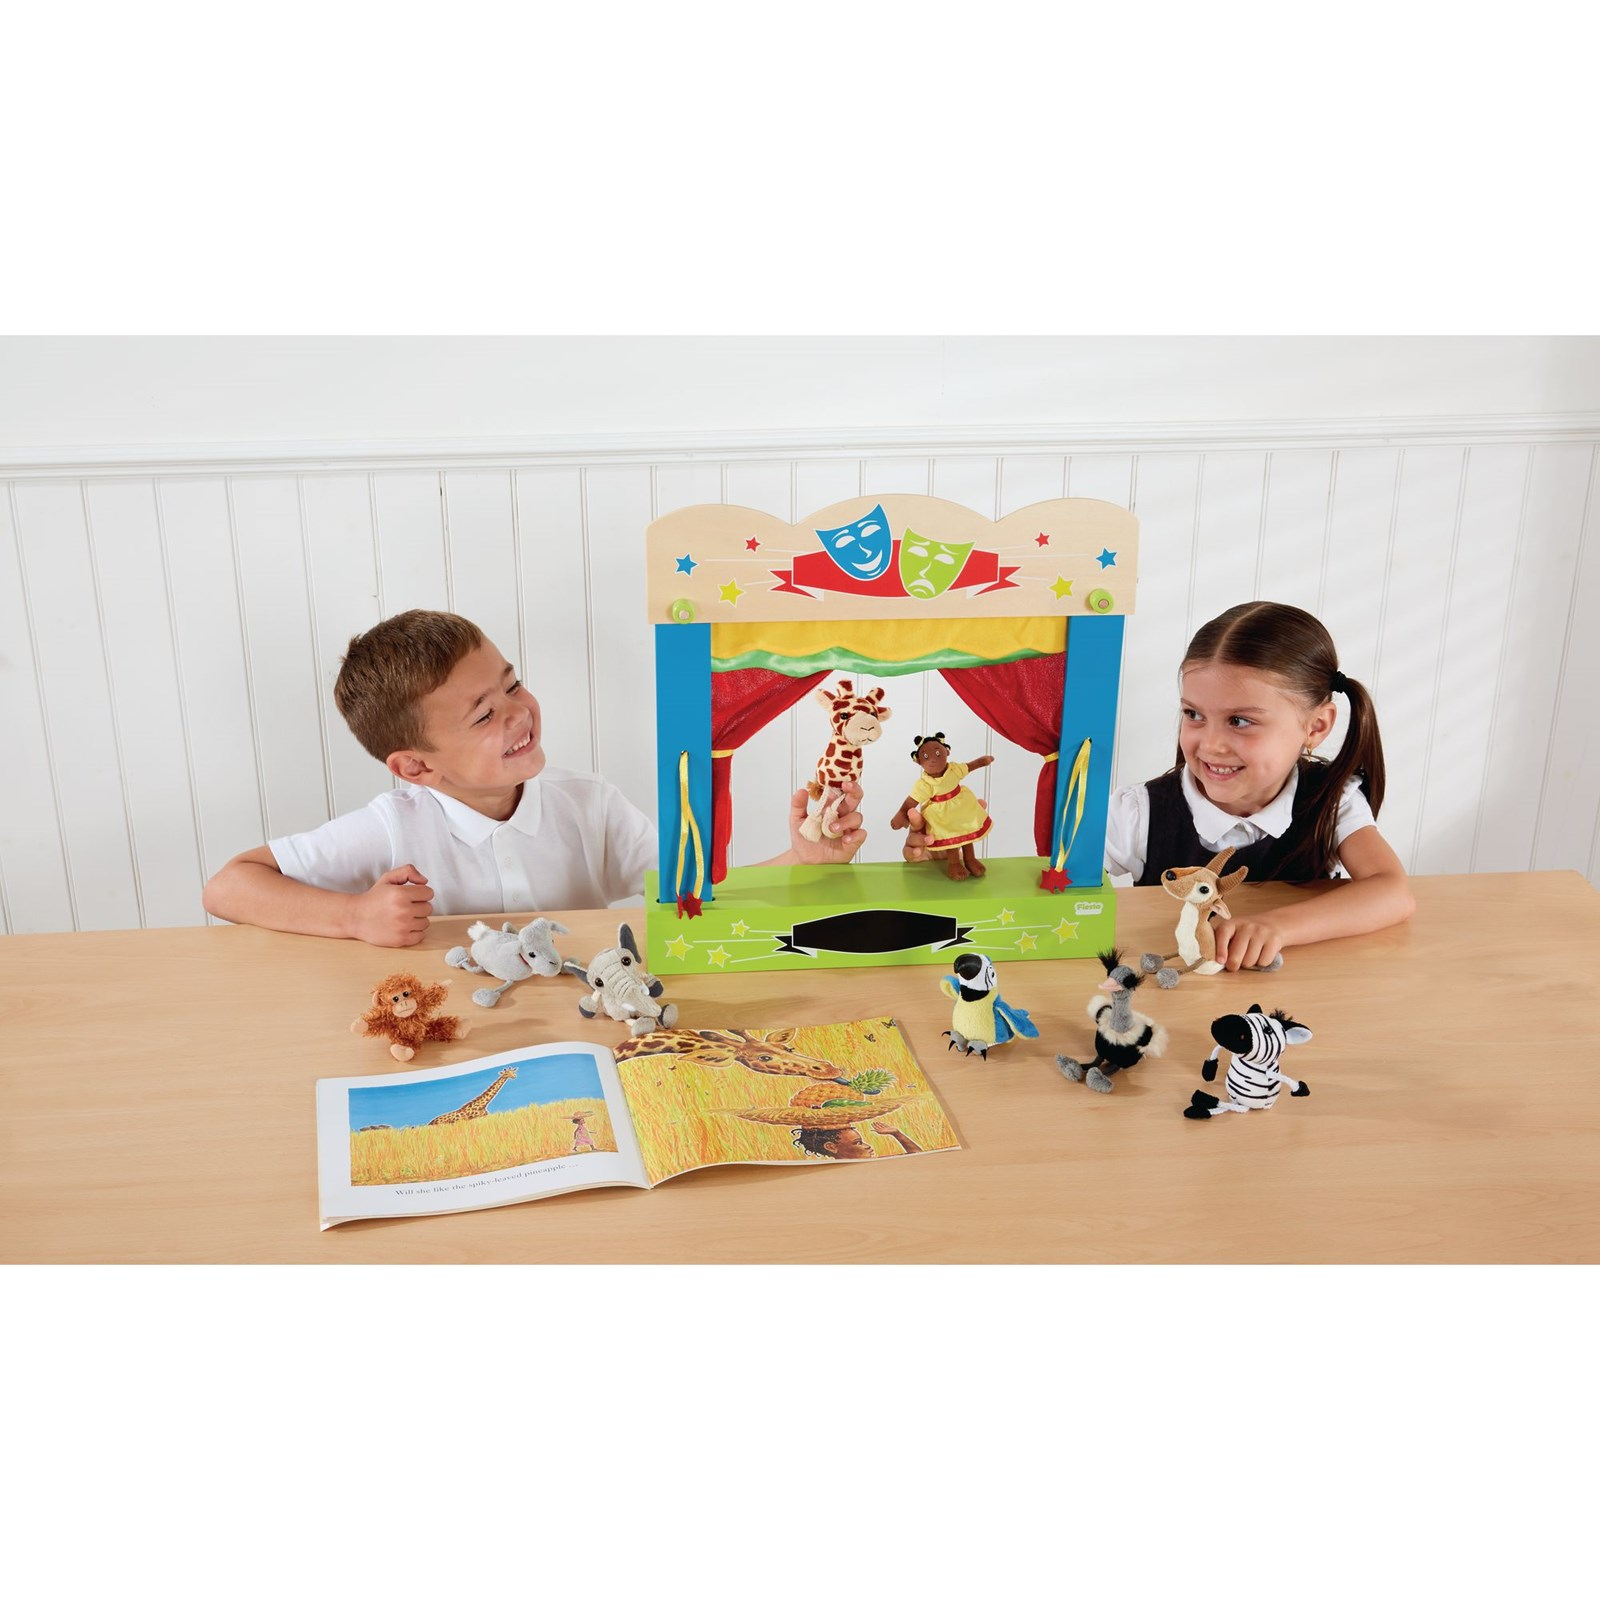 Carry Case Finger Puppet Theatre - Pack of 20